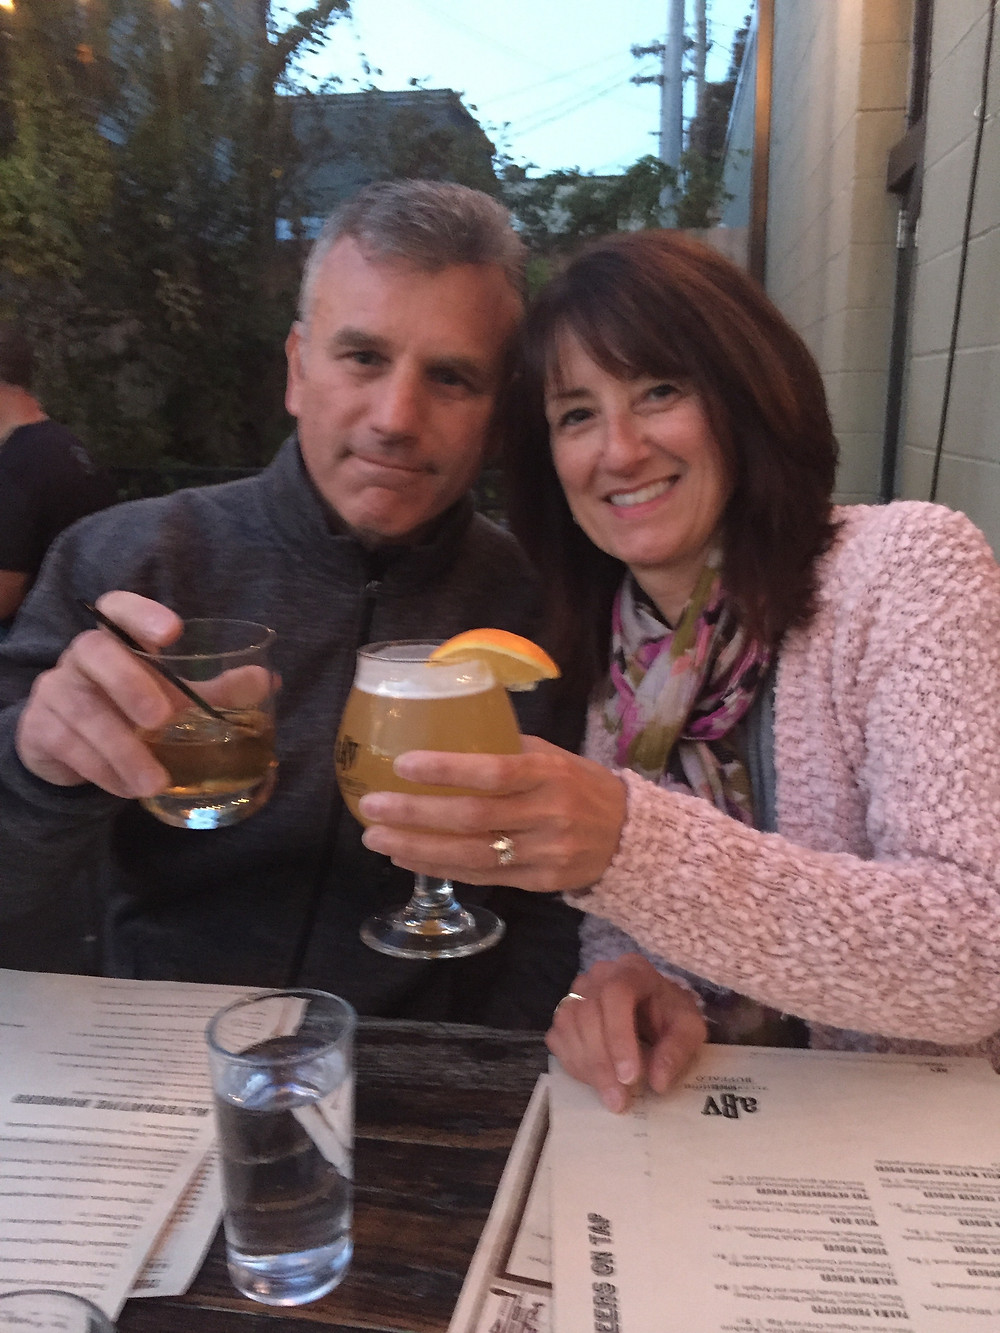 Parents On Patio Drinking